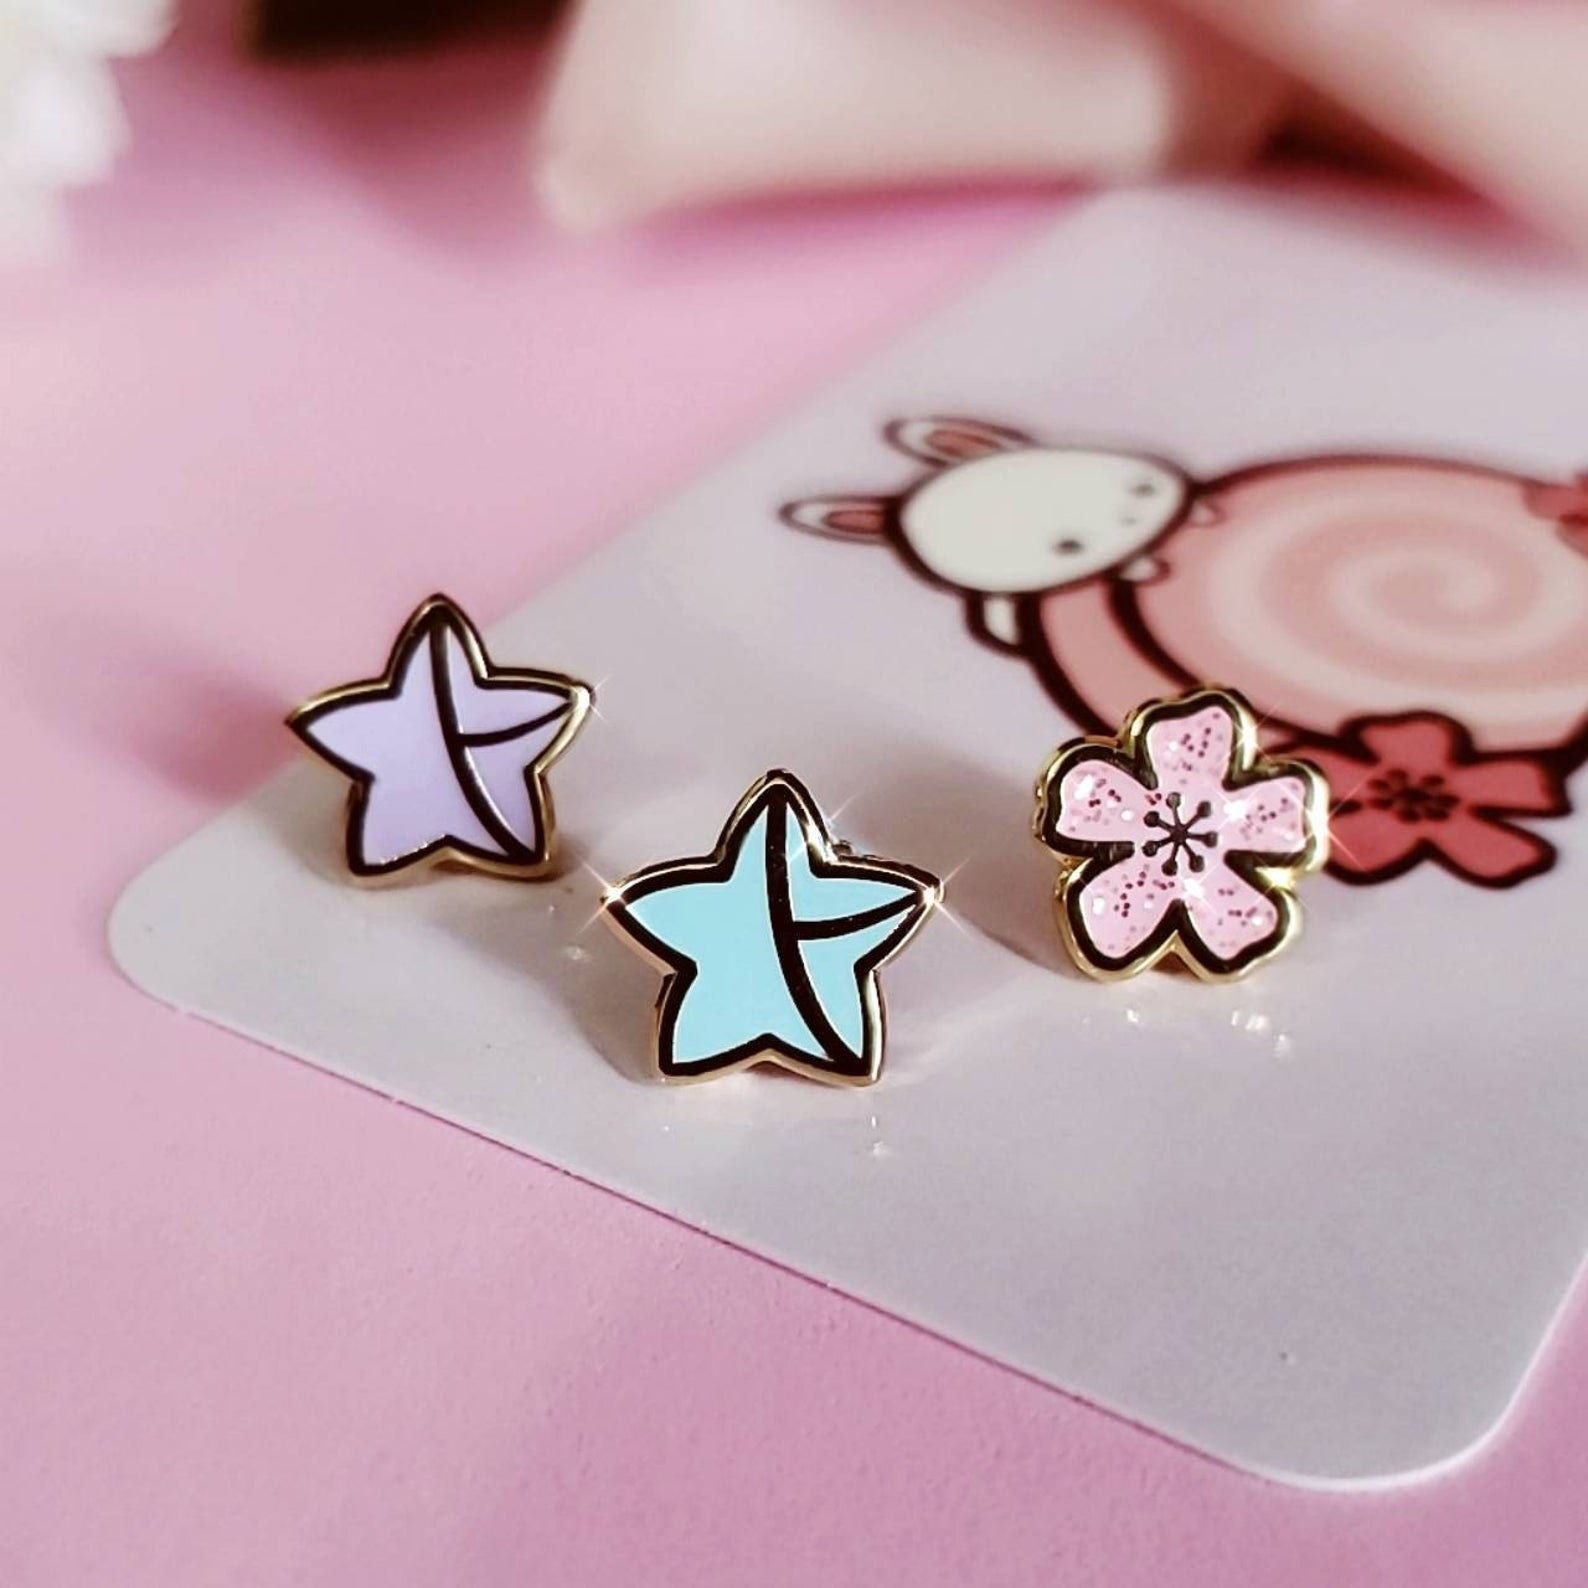 the pins